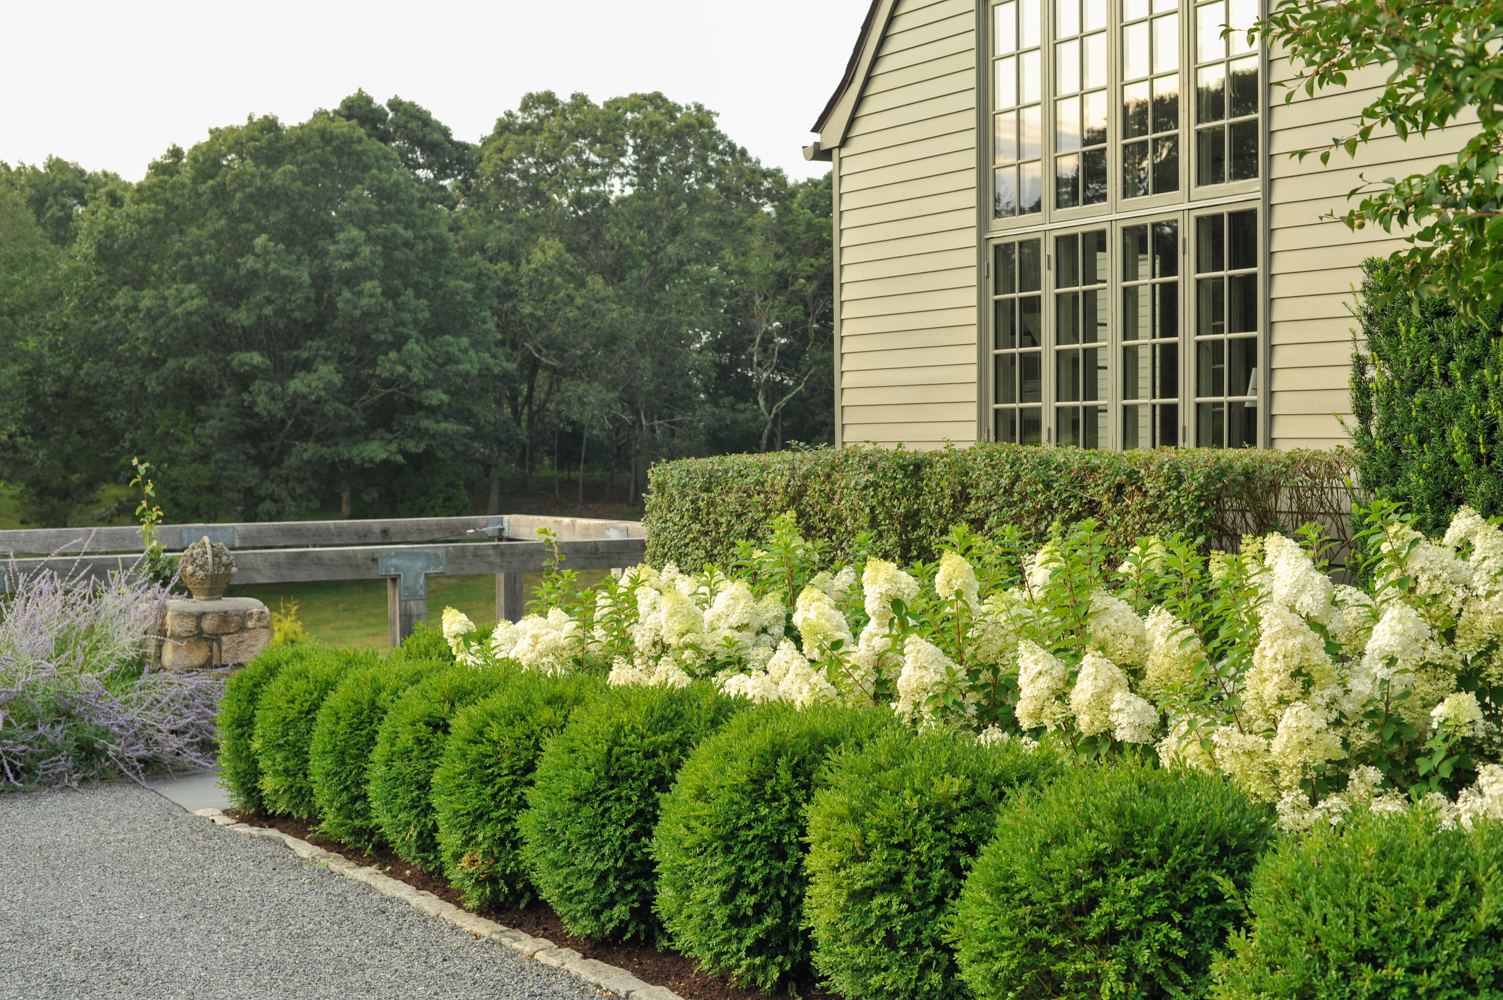 Garden design with outdoor living, swimming